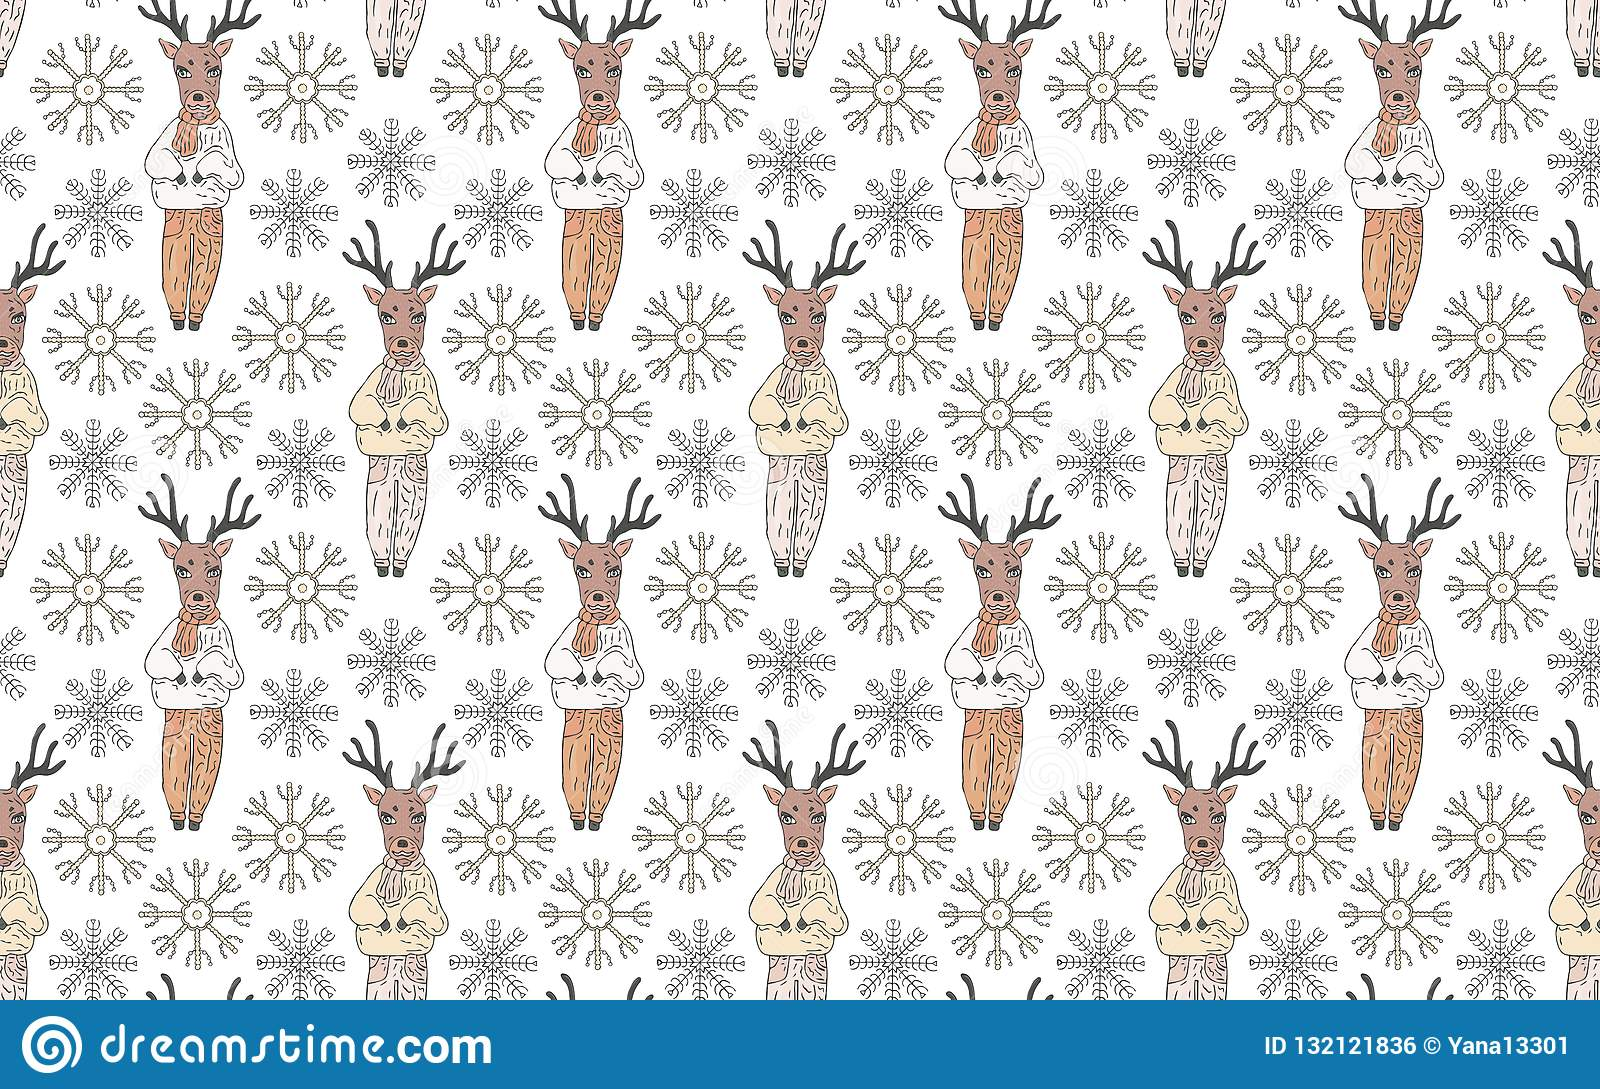 Seamless pattern. Deer in clothes and snowflakes on a white background.